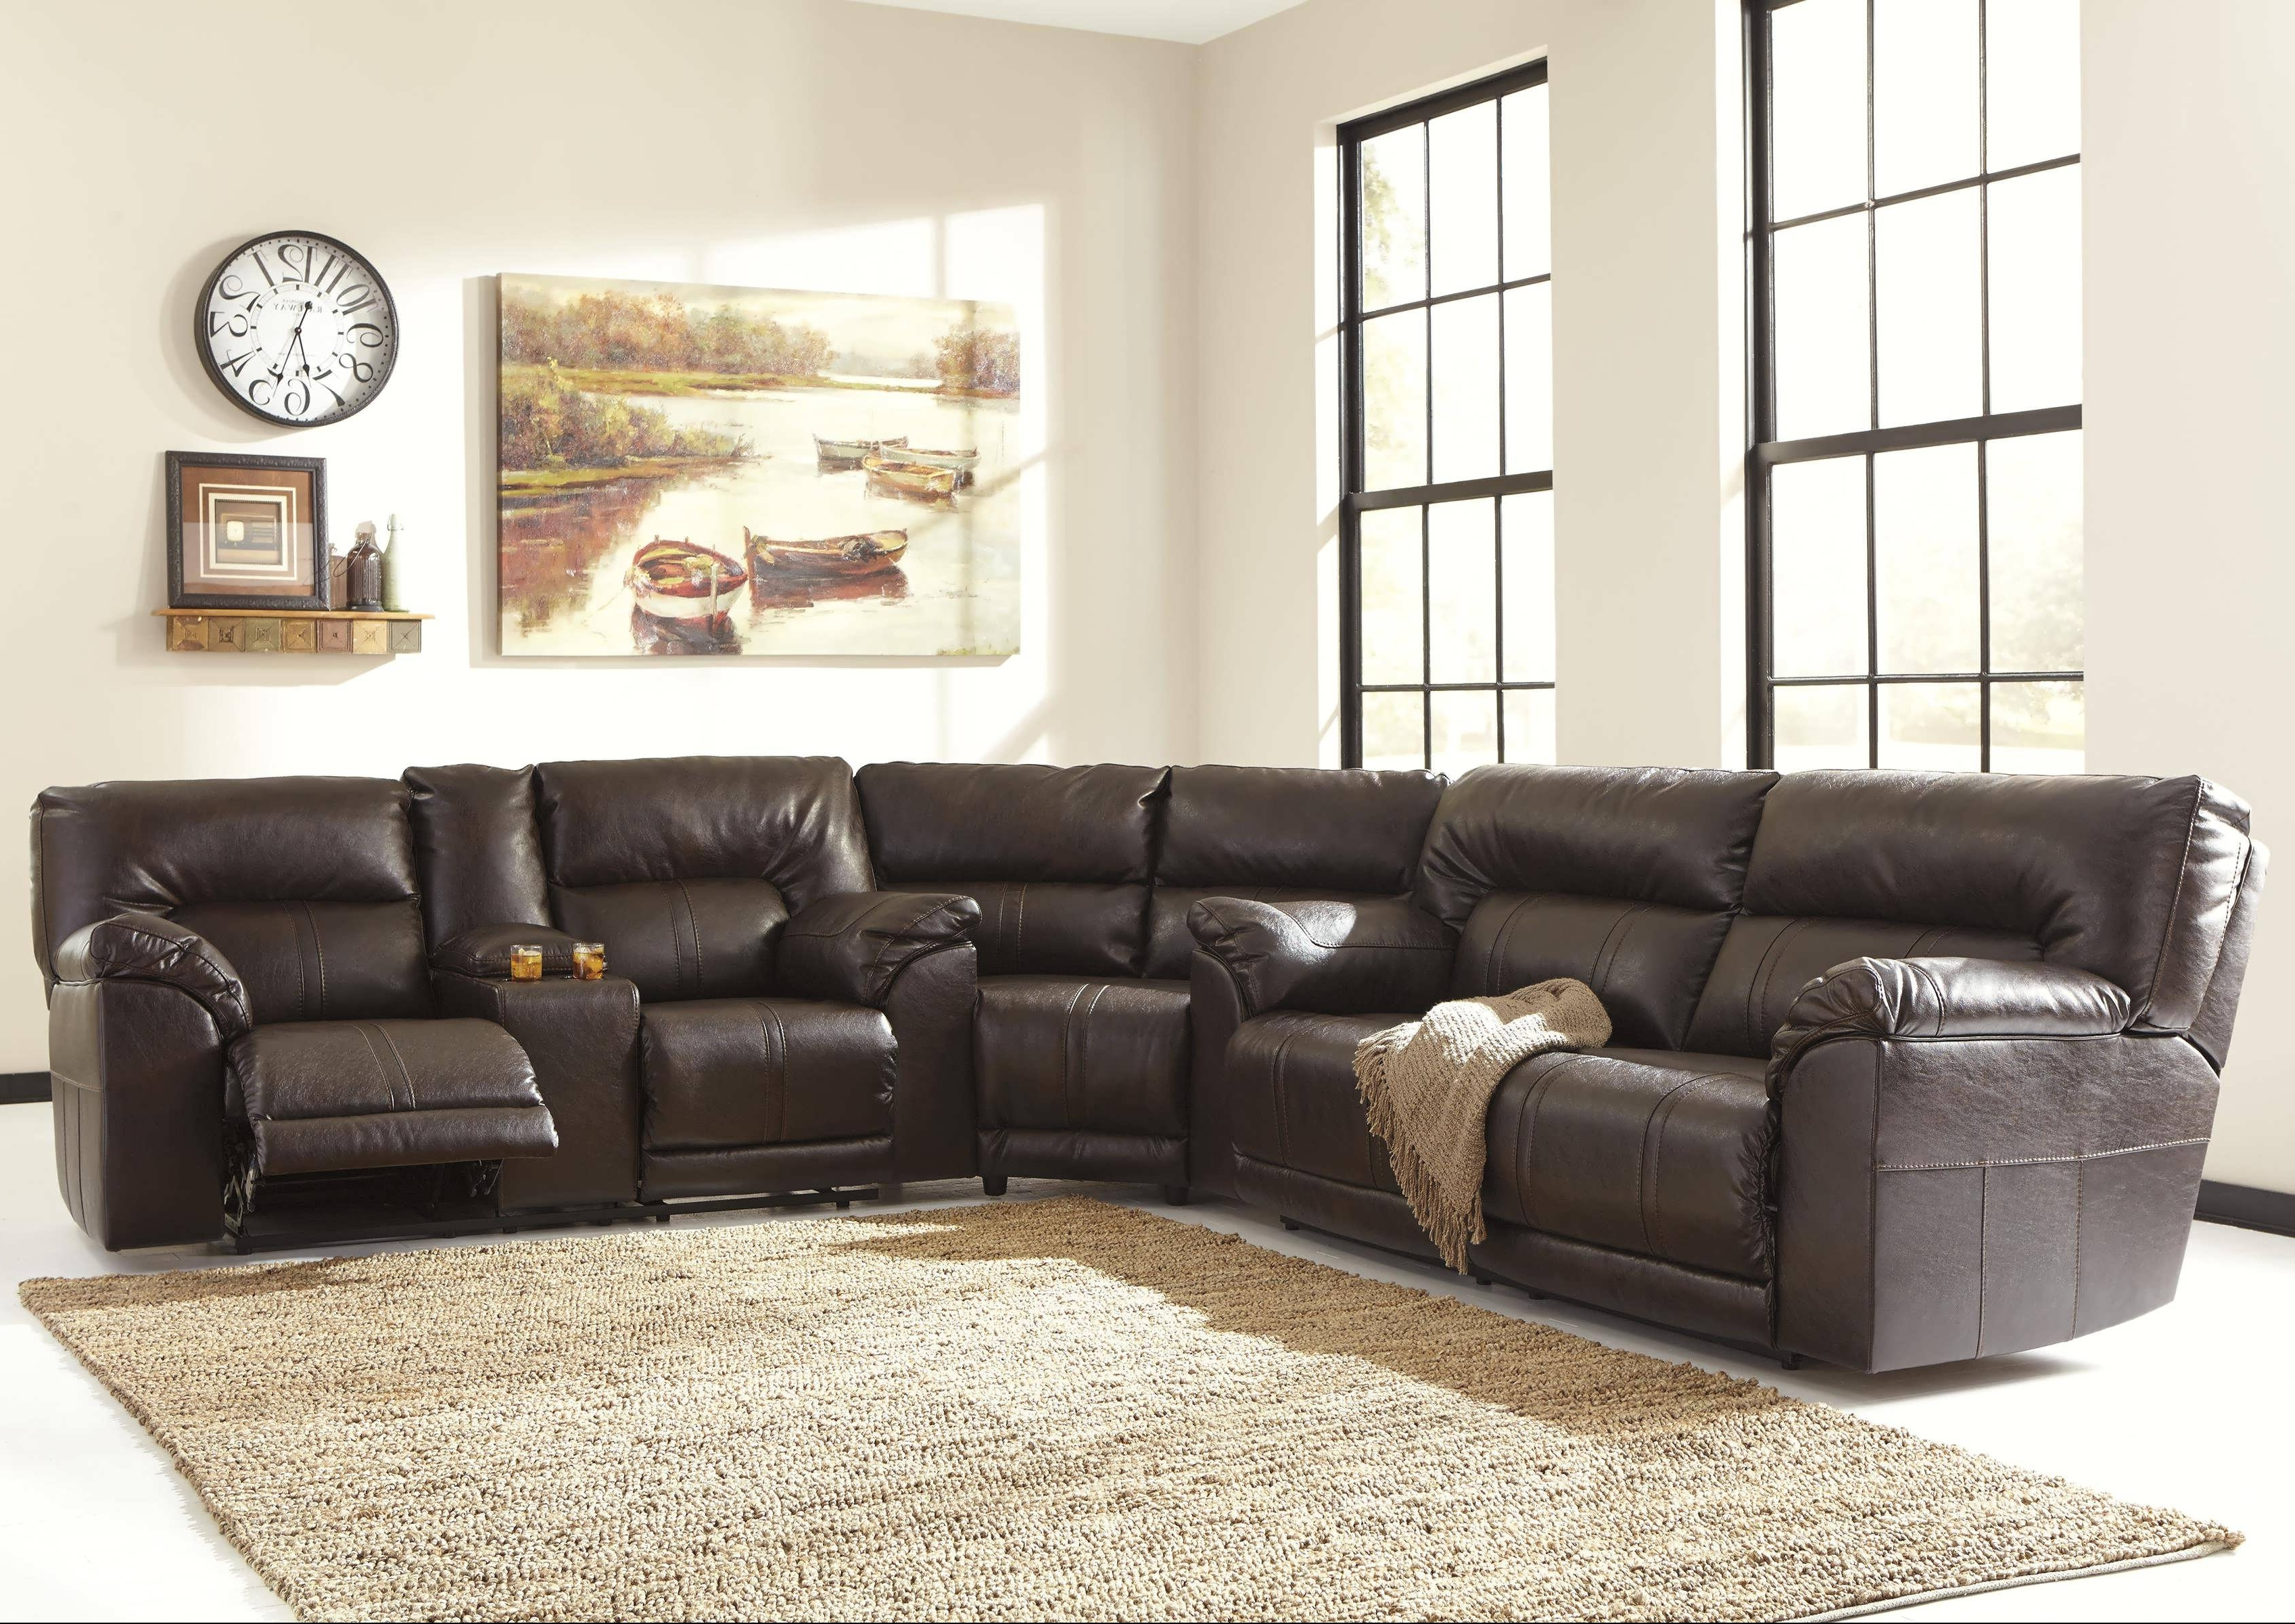 Genuine Leather Sectionals With Chaise Intended For 2018 Sofa : Oversized Sectionals Gray Sectional Leather Sectional Sofa (View 8 of 15)